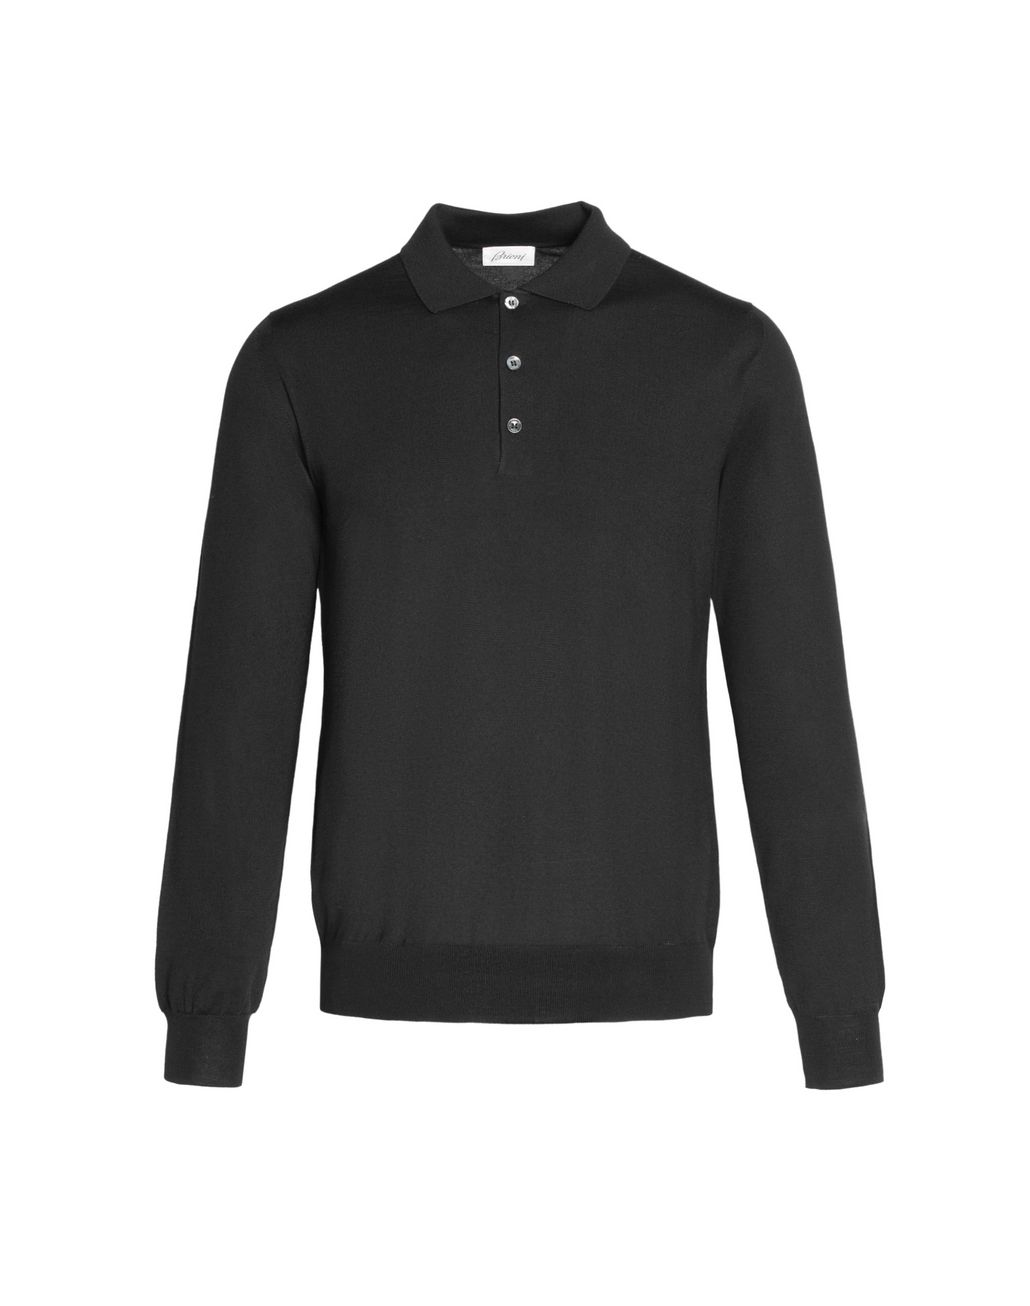 BRIONI  'Essential' Black Long-Sleeved Polo Shirt Knitwear Man f